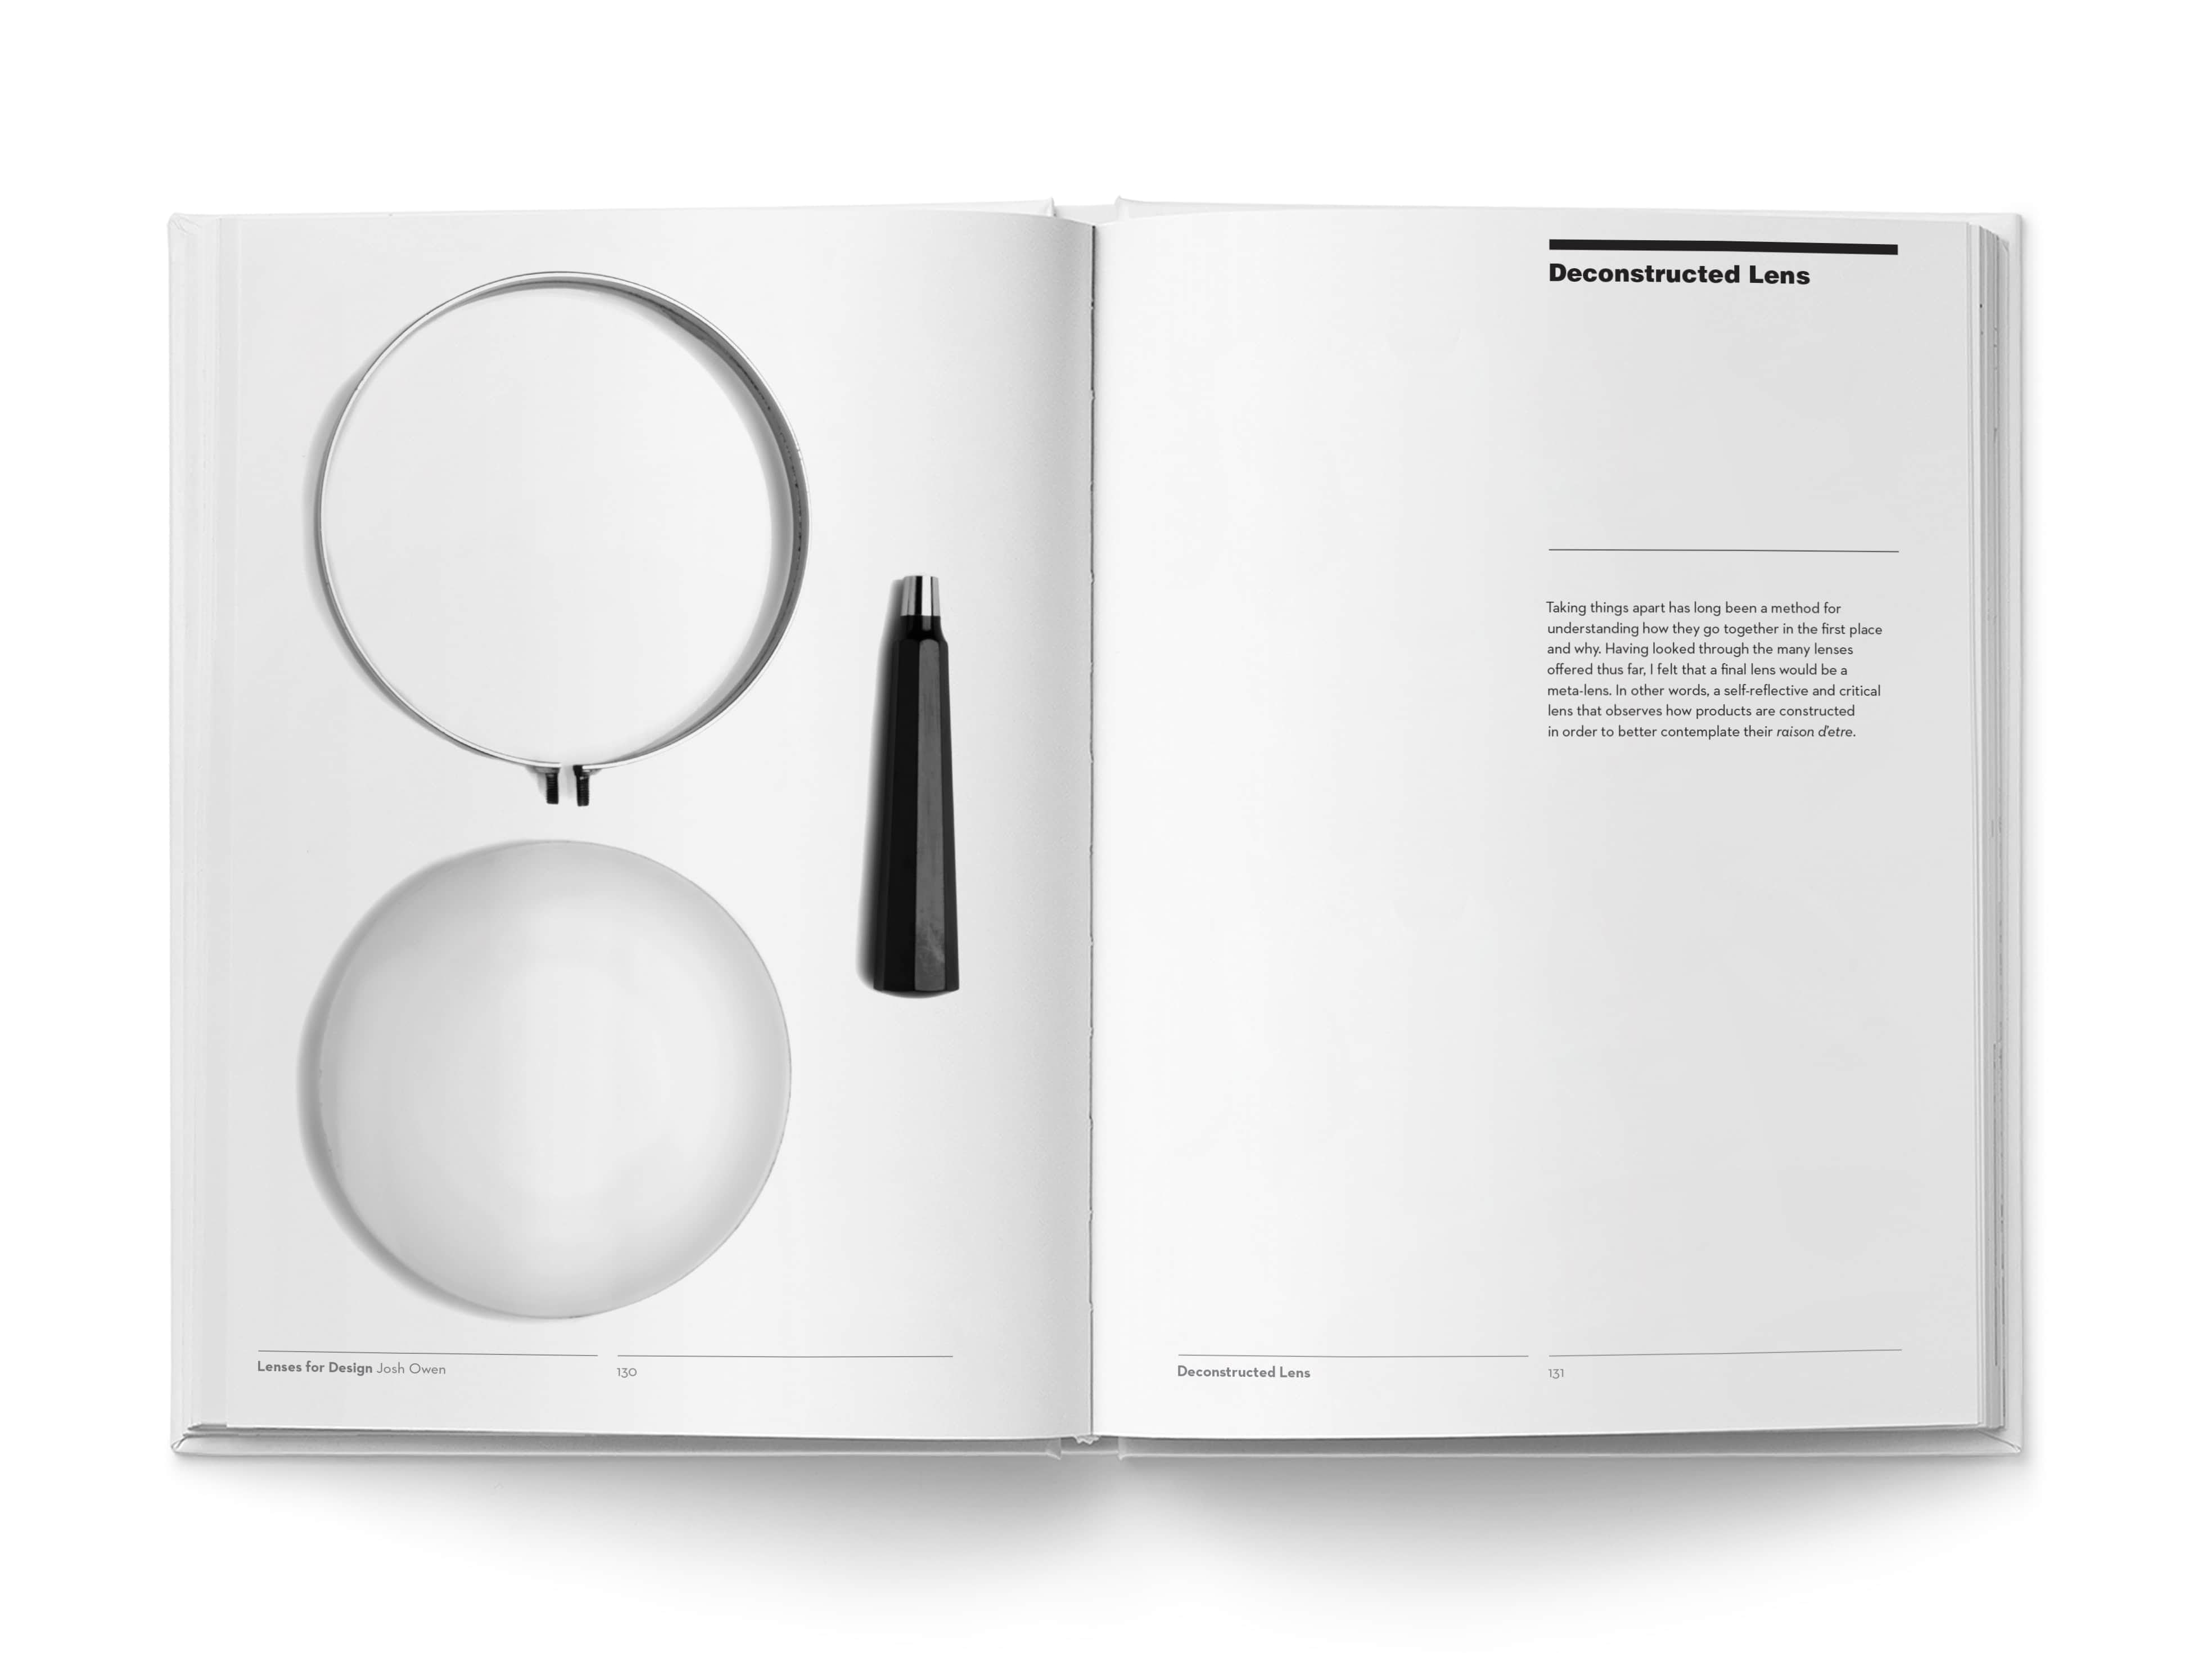 Lenses for Design Book